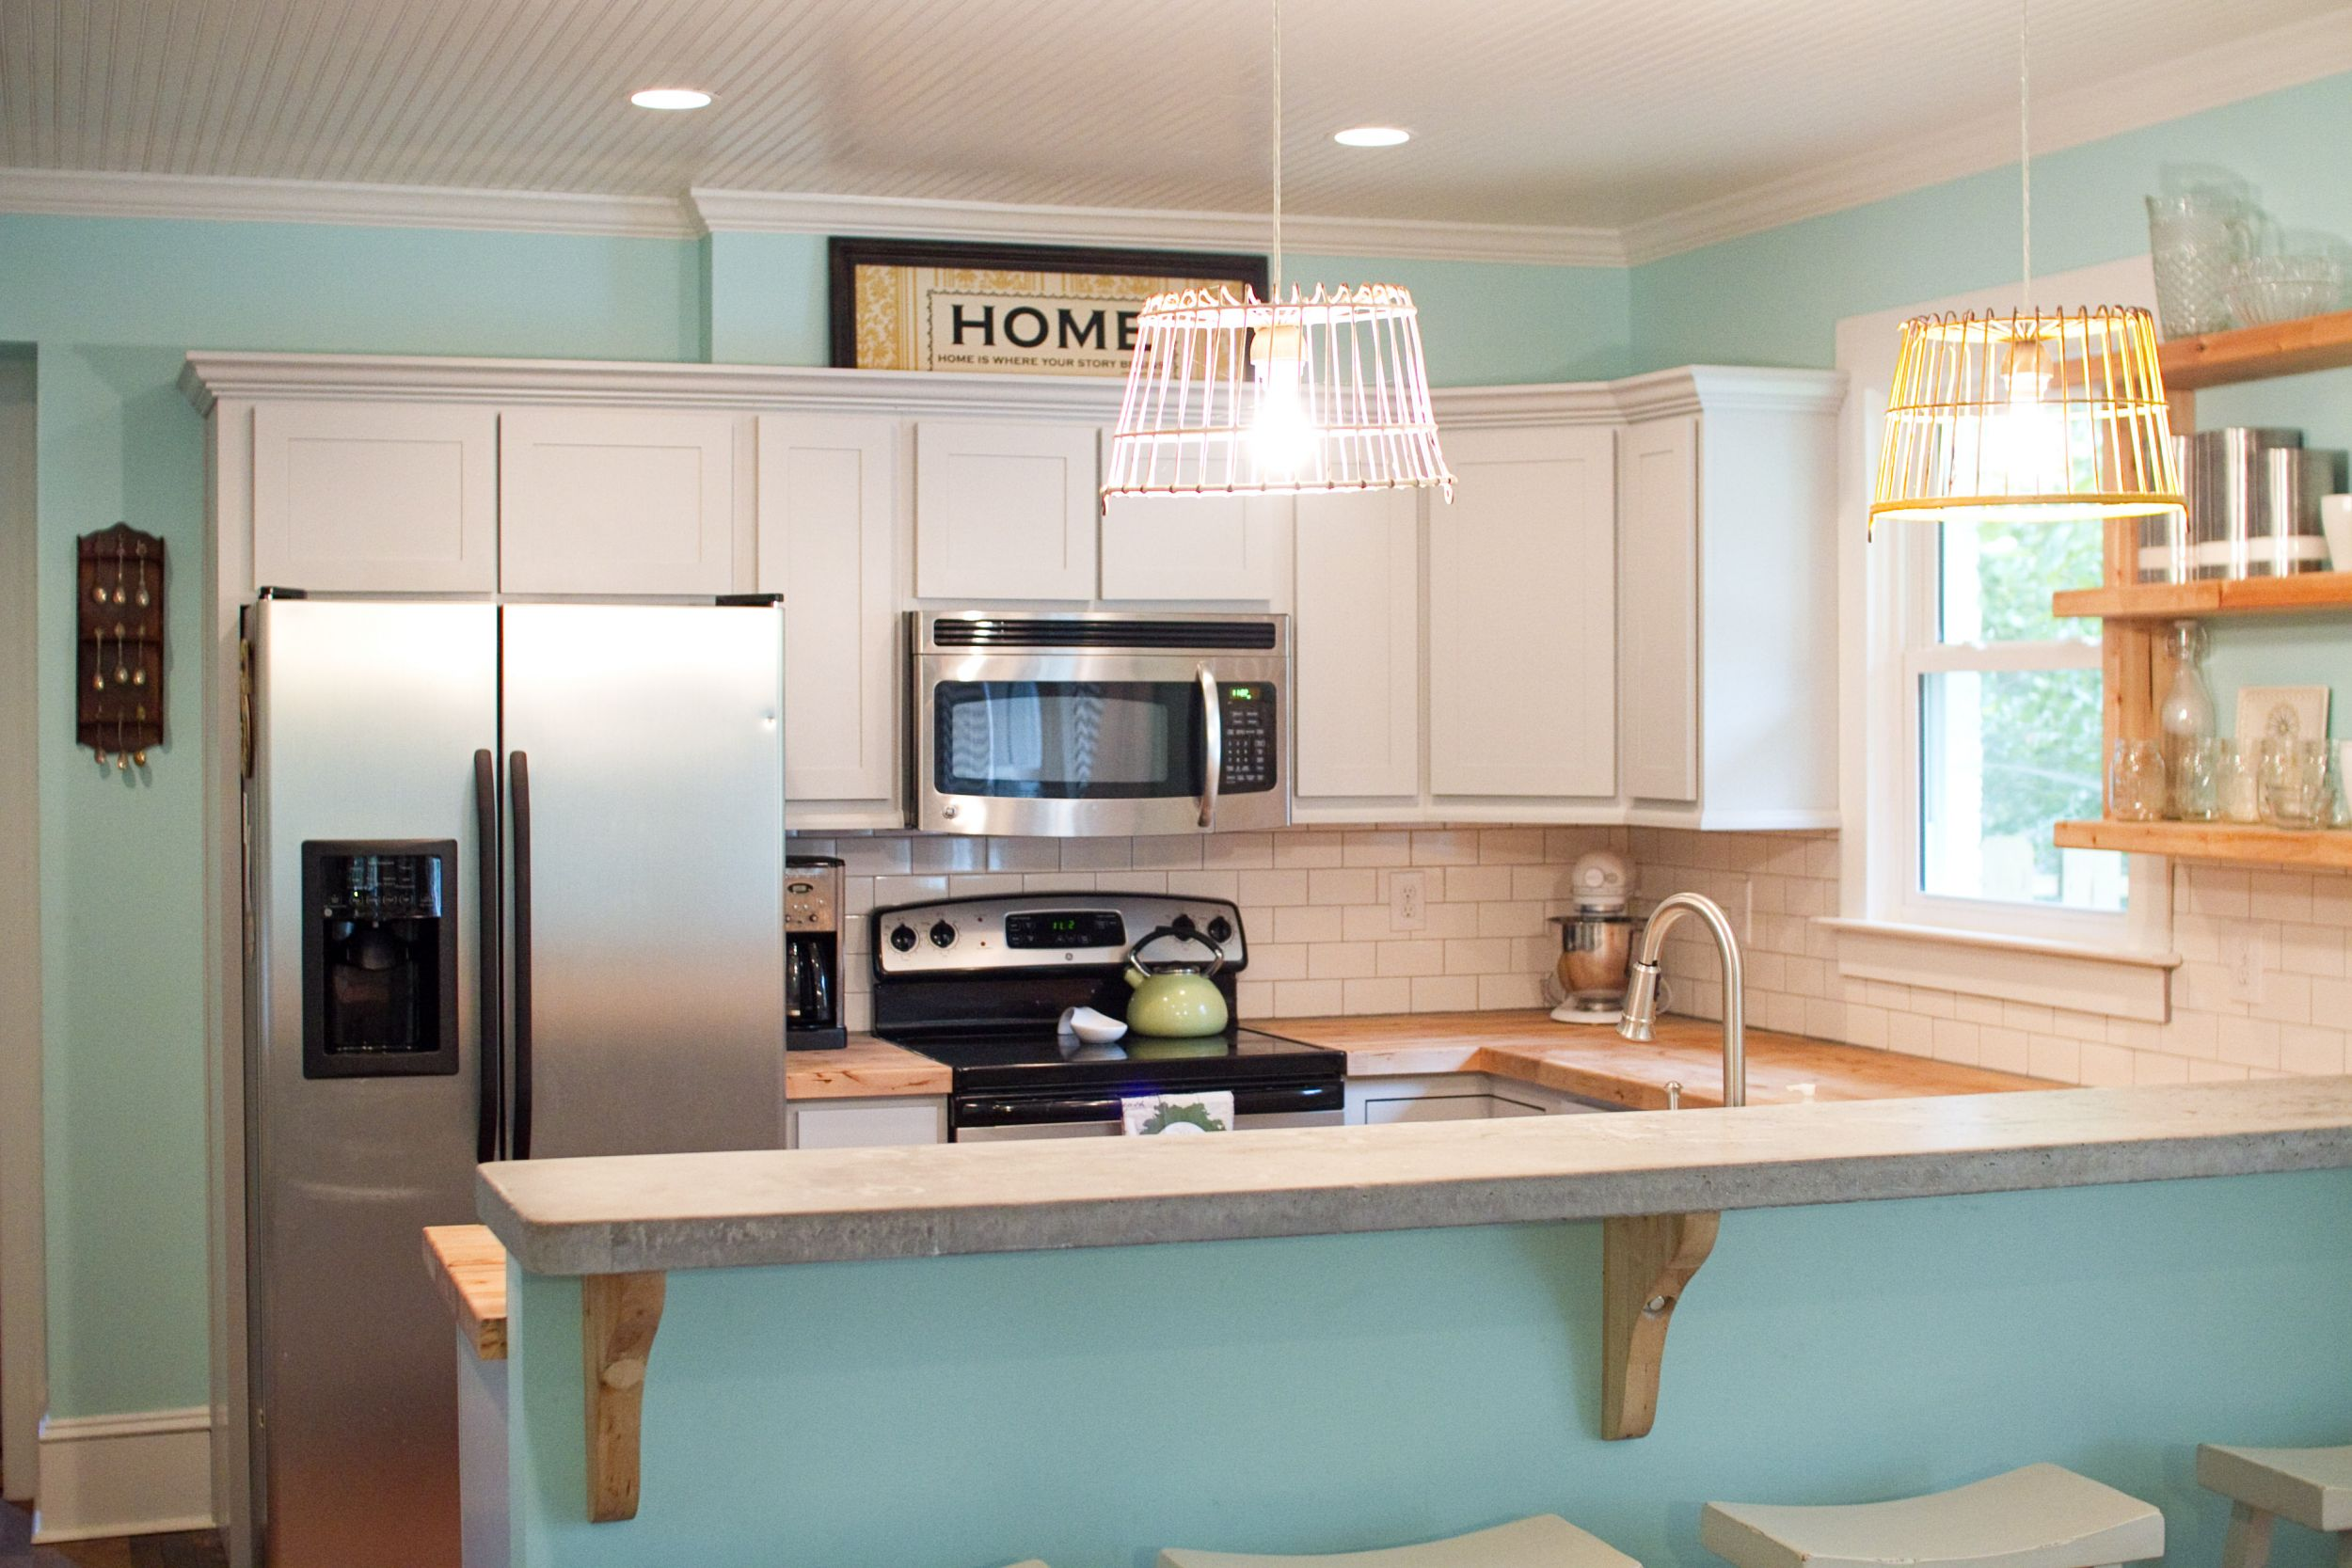 Room decorating before and after makeovers How to redesign your kitchen